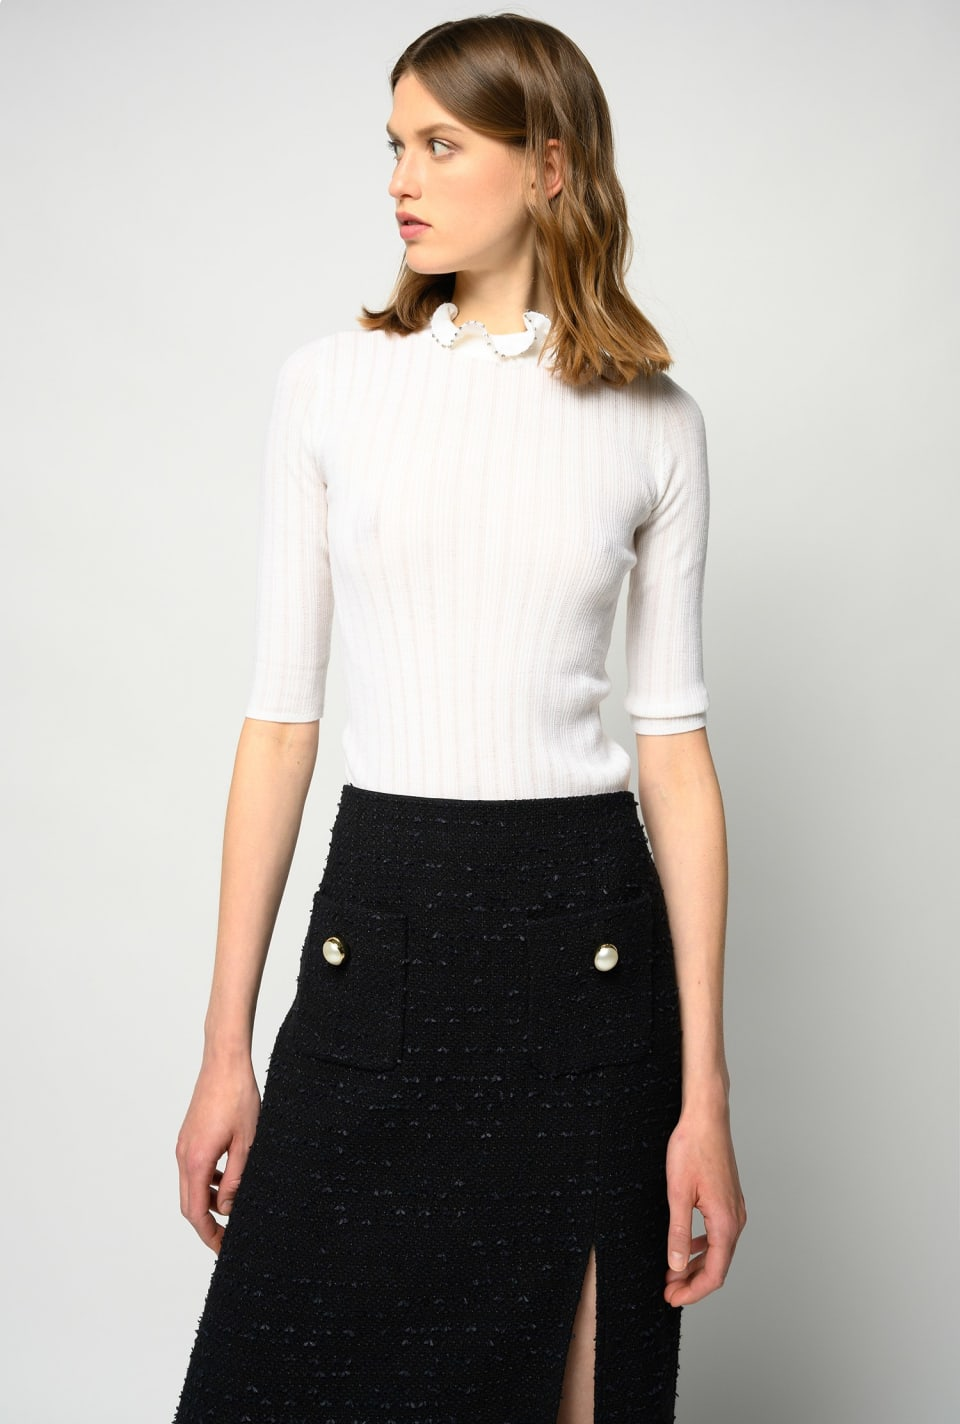 Sweater with ruffled collar with rhinestones - Pinko